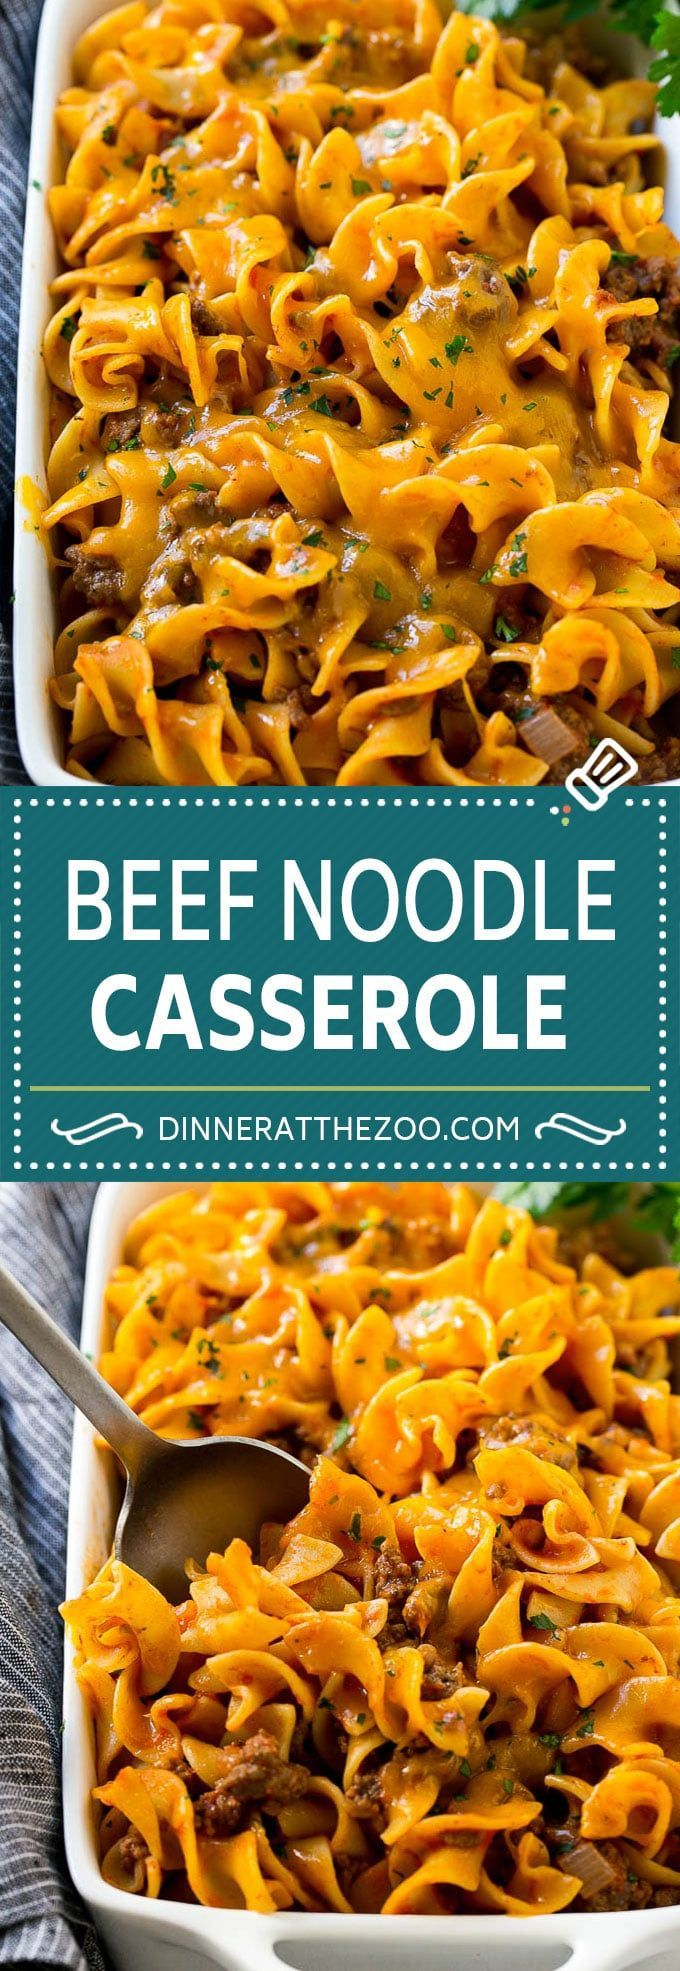 Beef Noodle Casserole Recipe Ground Beef Casserole Beef And Egg Noodles Beef Recipes For Dinner Beef Recipes Easy Beef Dinner